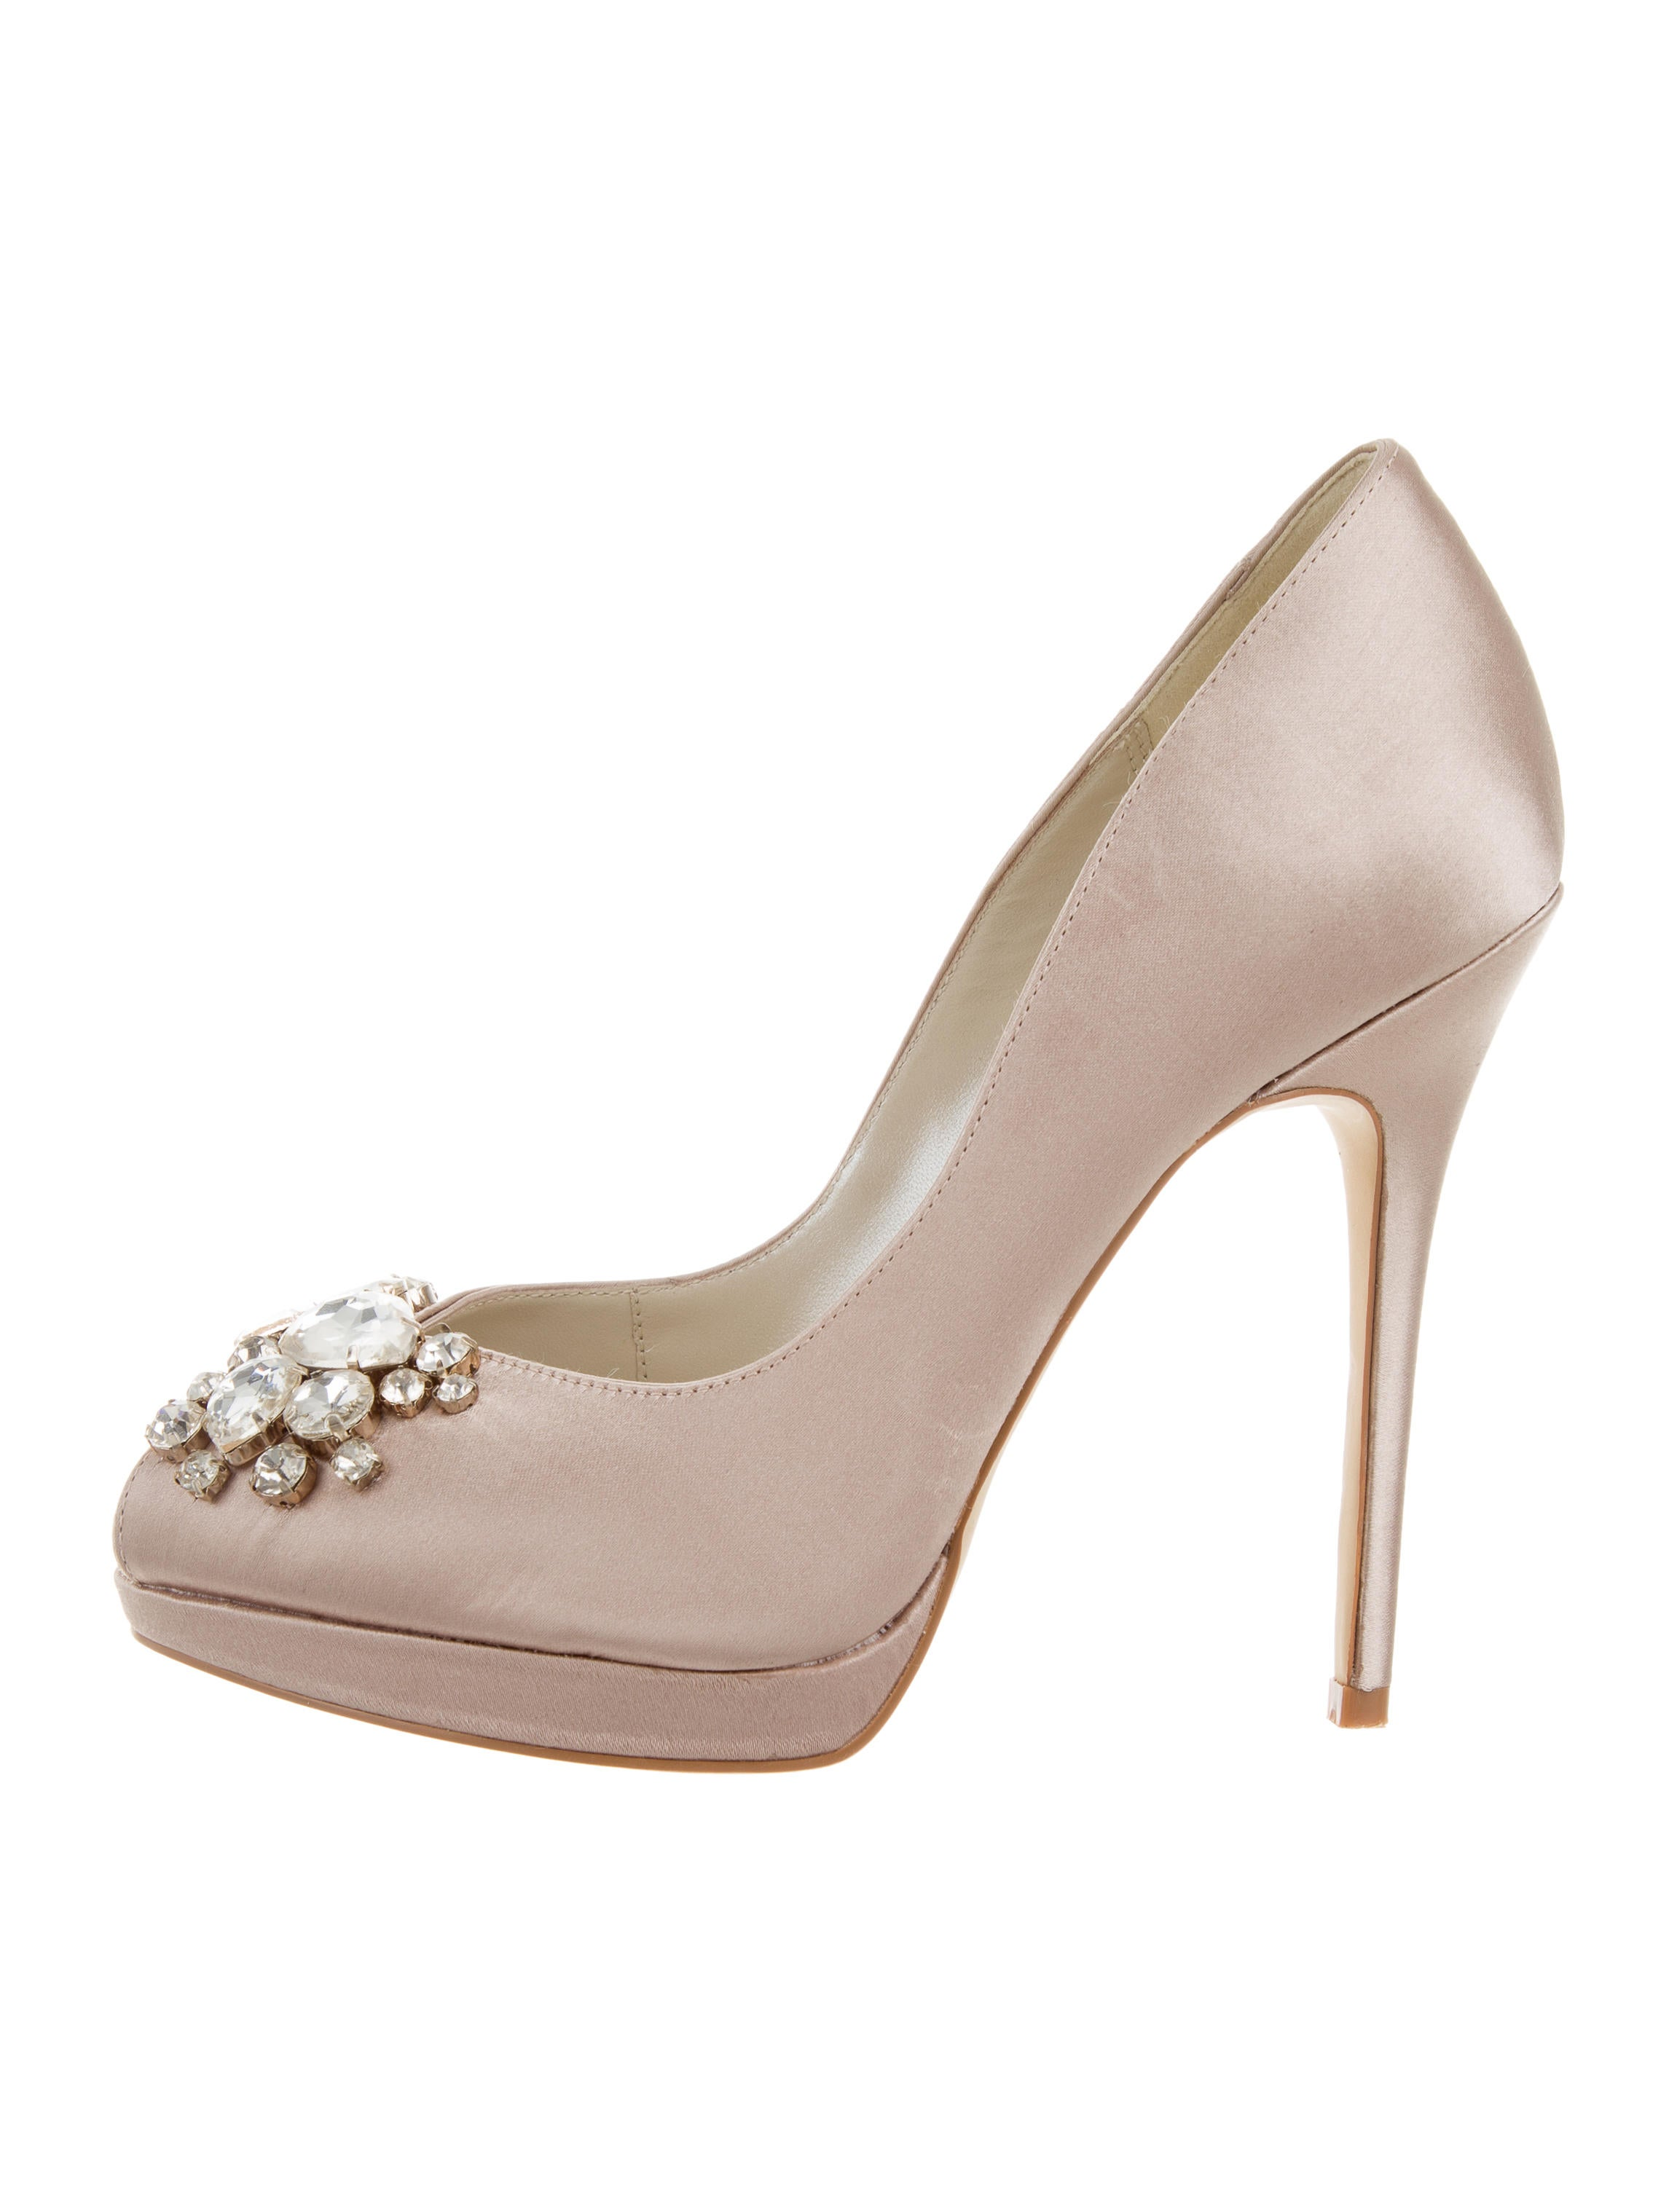 Karen Millen Satin Jewel-Embellished Pumps with credit card cheap price cheap sale countdown package outlet 100% authentic pick a best for sale for sale under $60 gYJtXIZ7